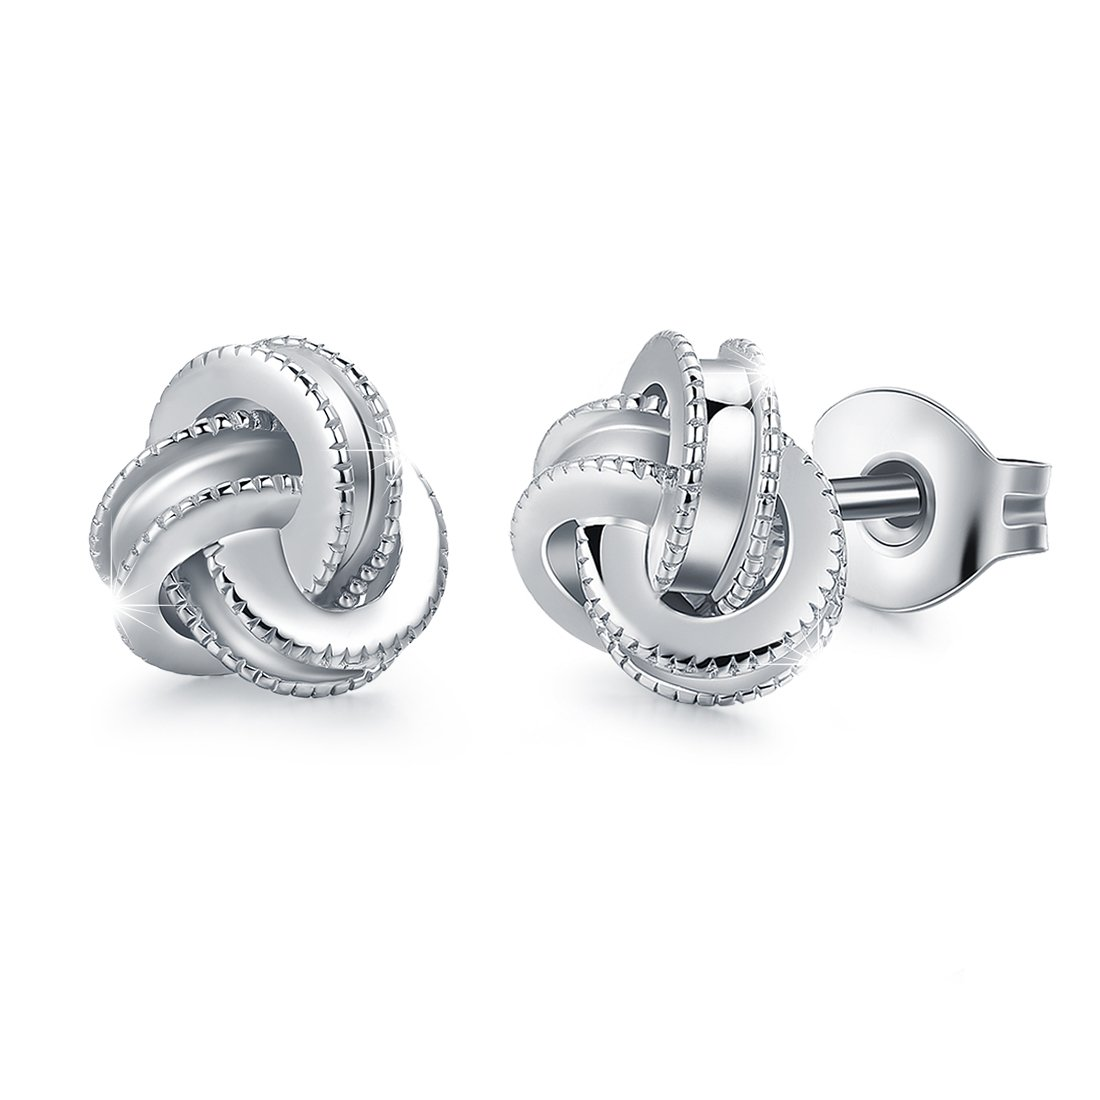 98d6ec0906d Amazon.com  White Gold Plated Sterling Silver Studs Love Knot Earrings For  Women